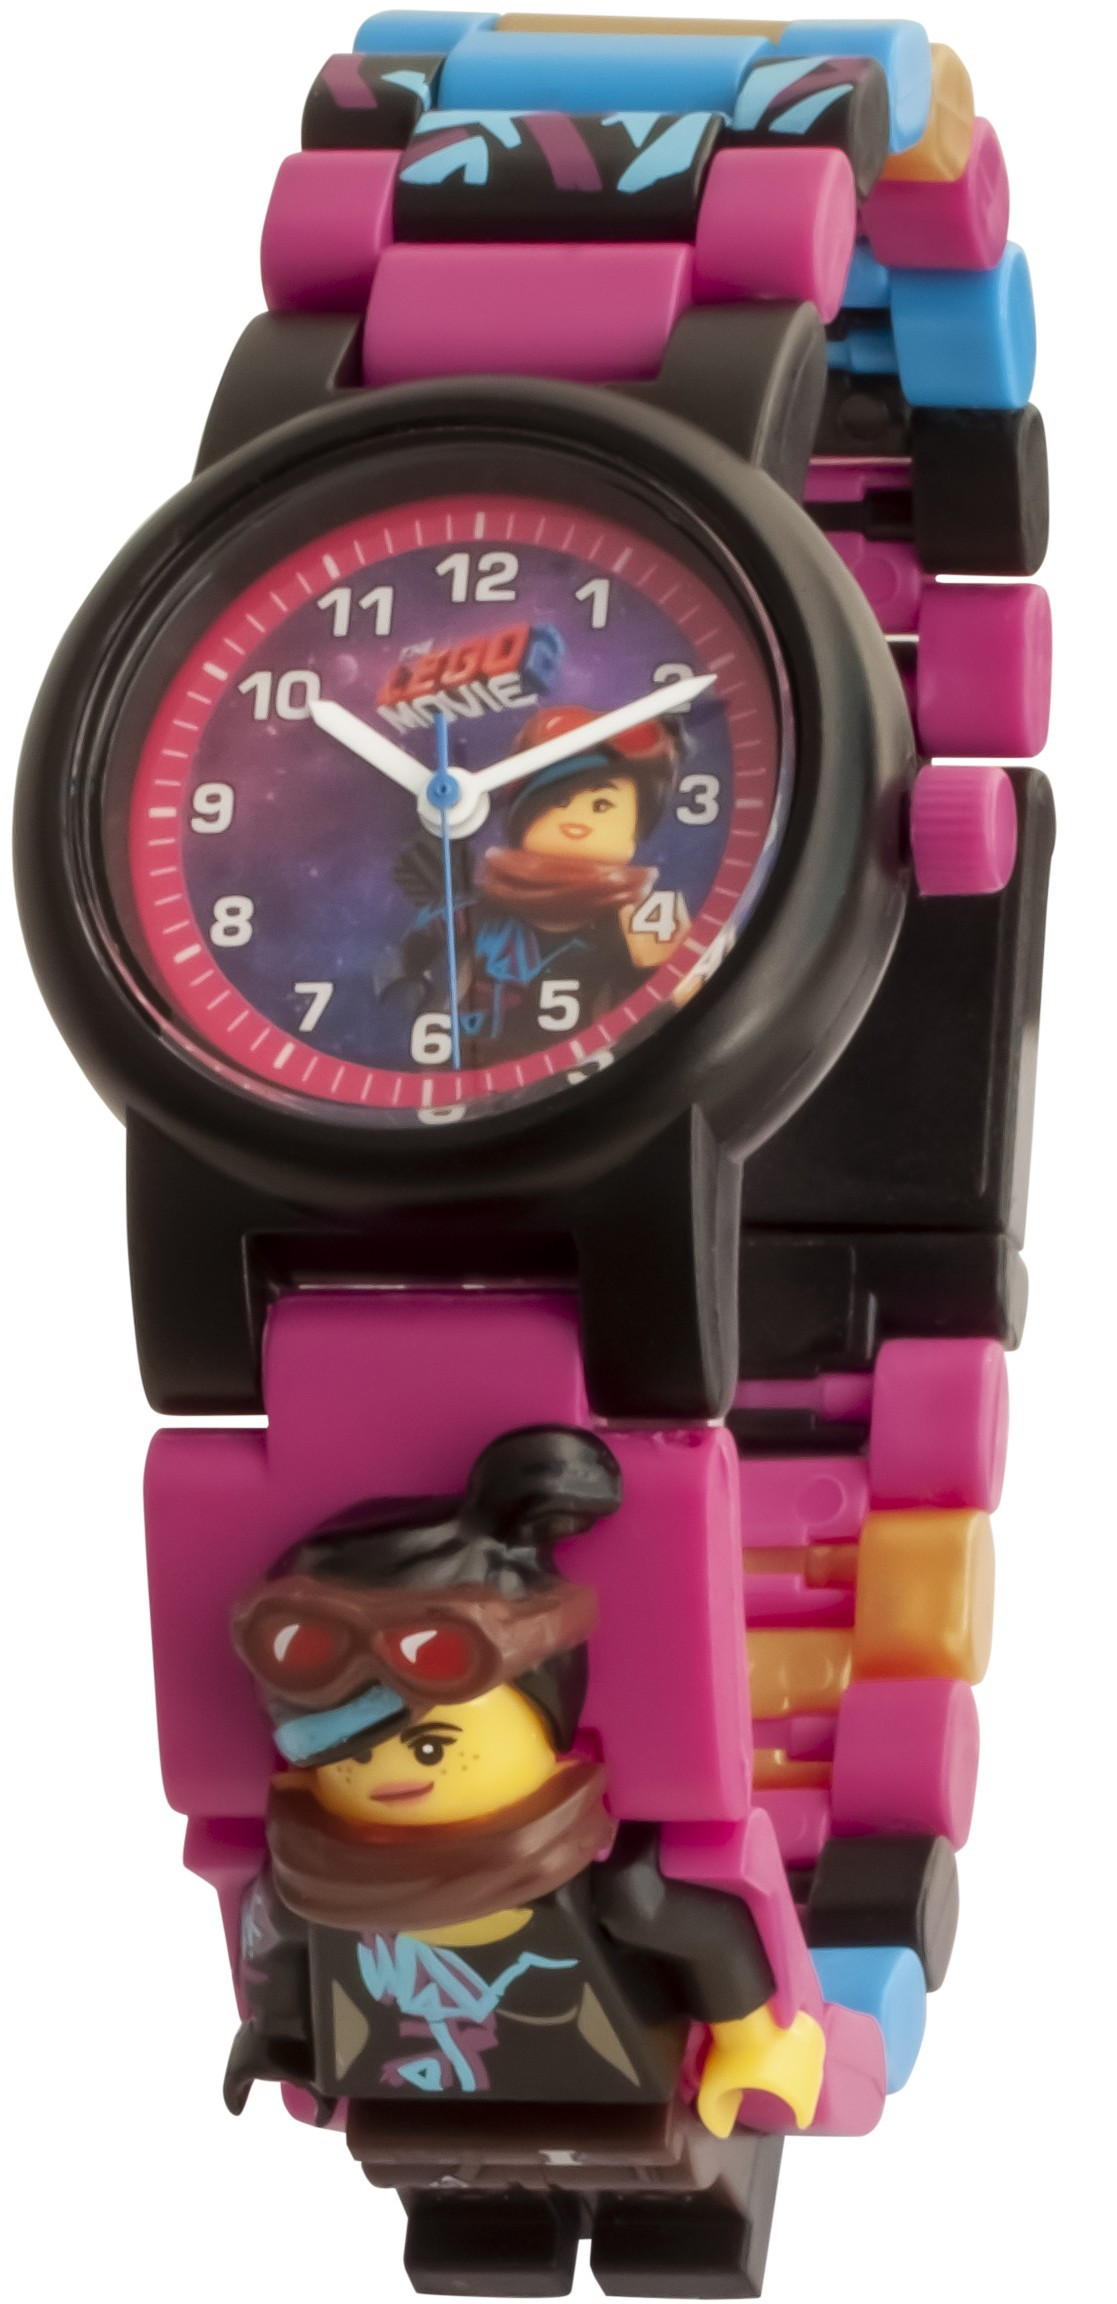 LEGO Movie 2 - Wyldstyle Figure Link Watch - Heromic b77b5b984bf1a